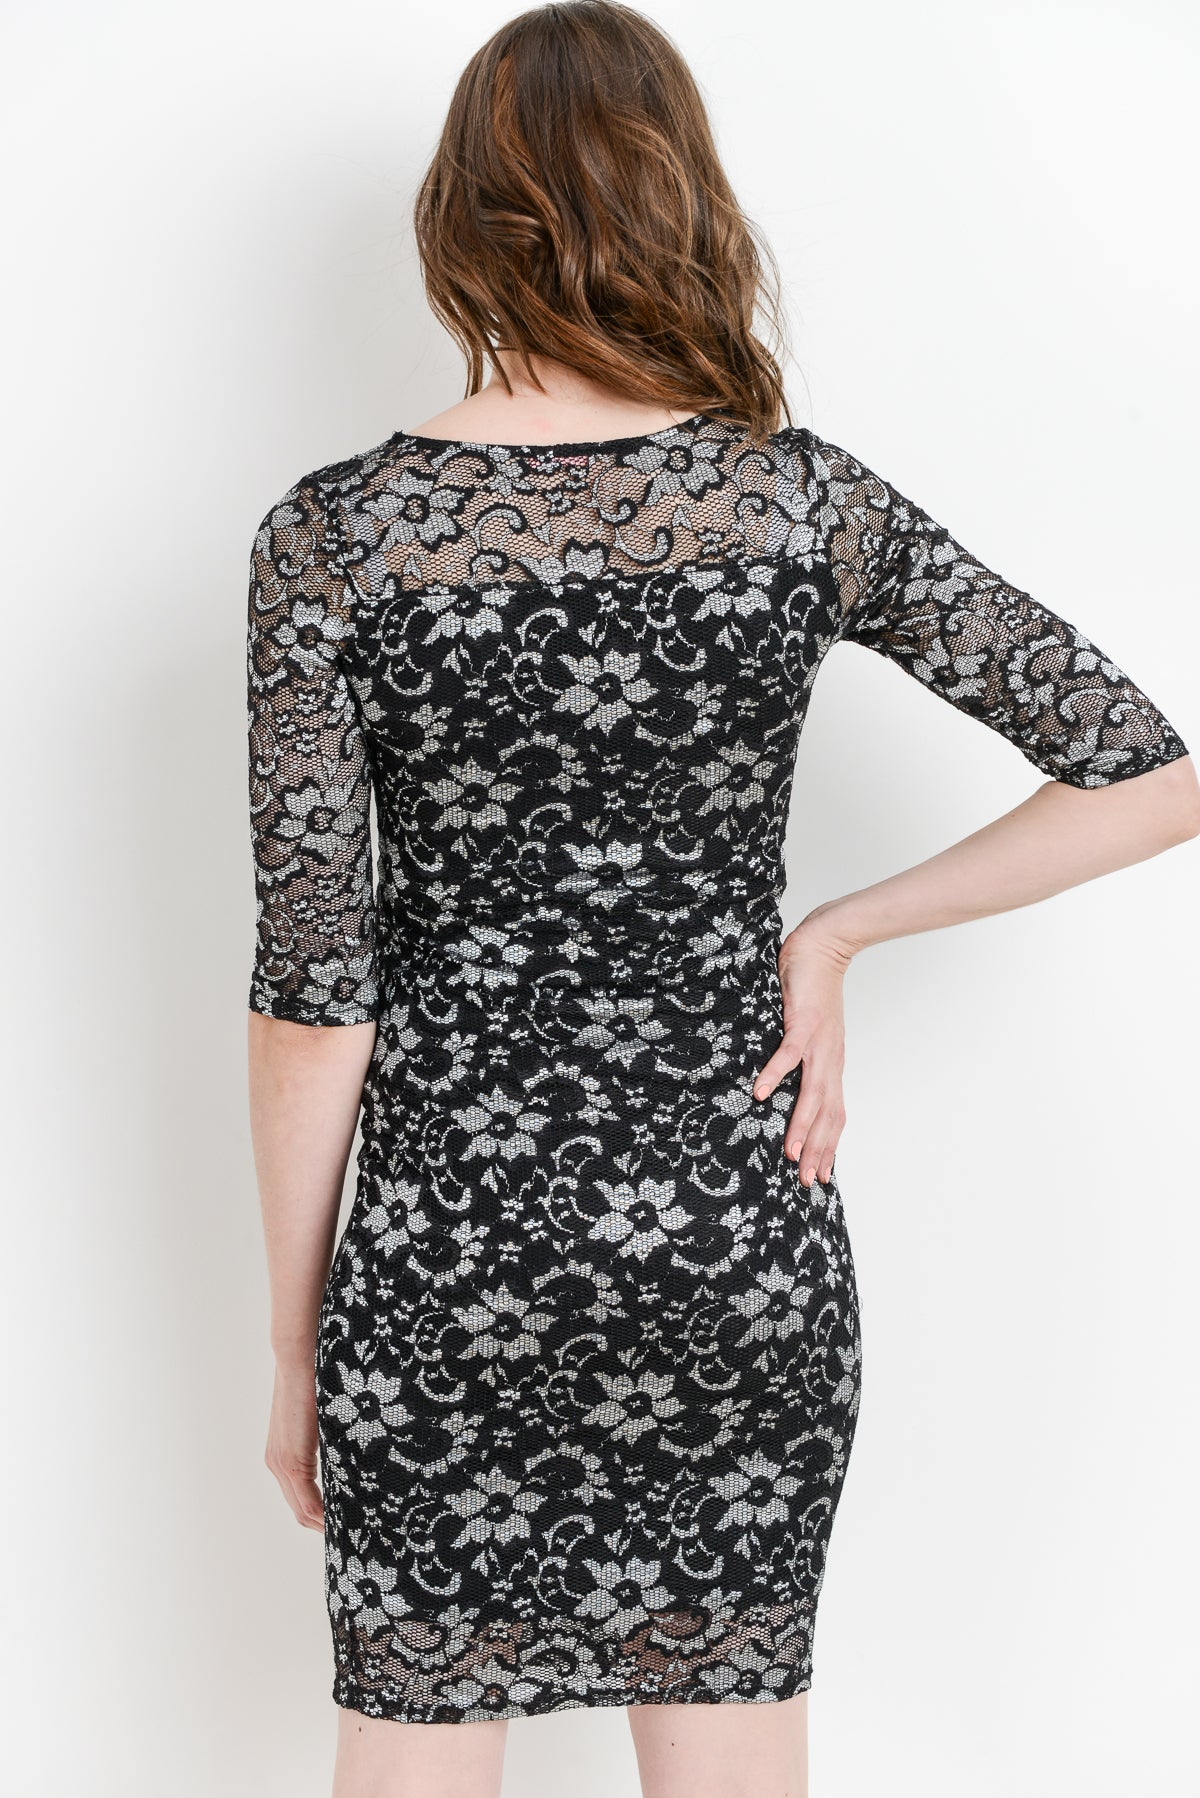 Sakura Lace Bodycon Maternity Dress